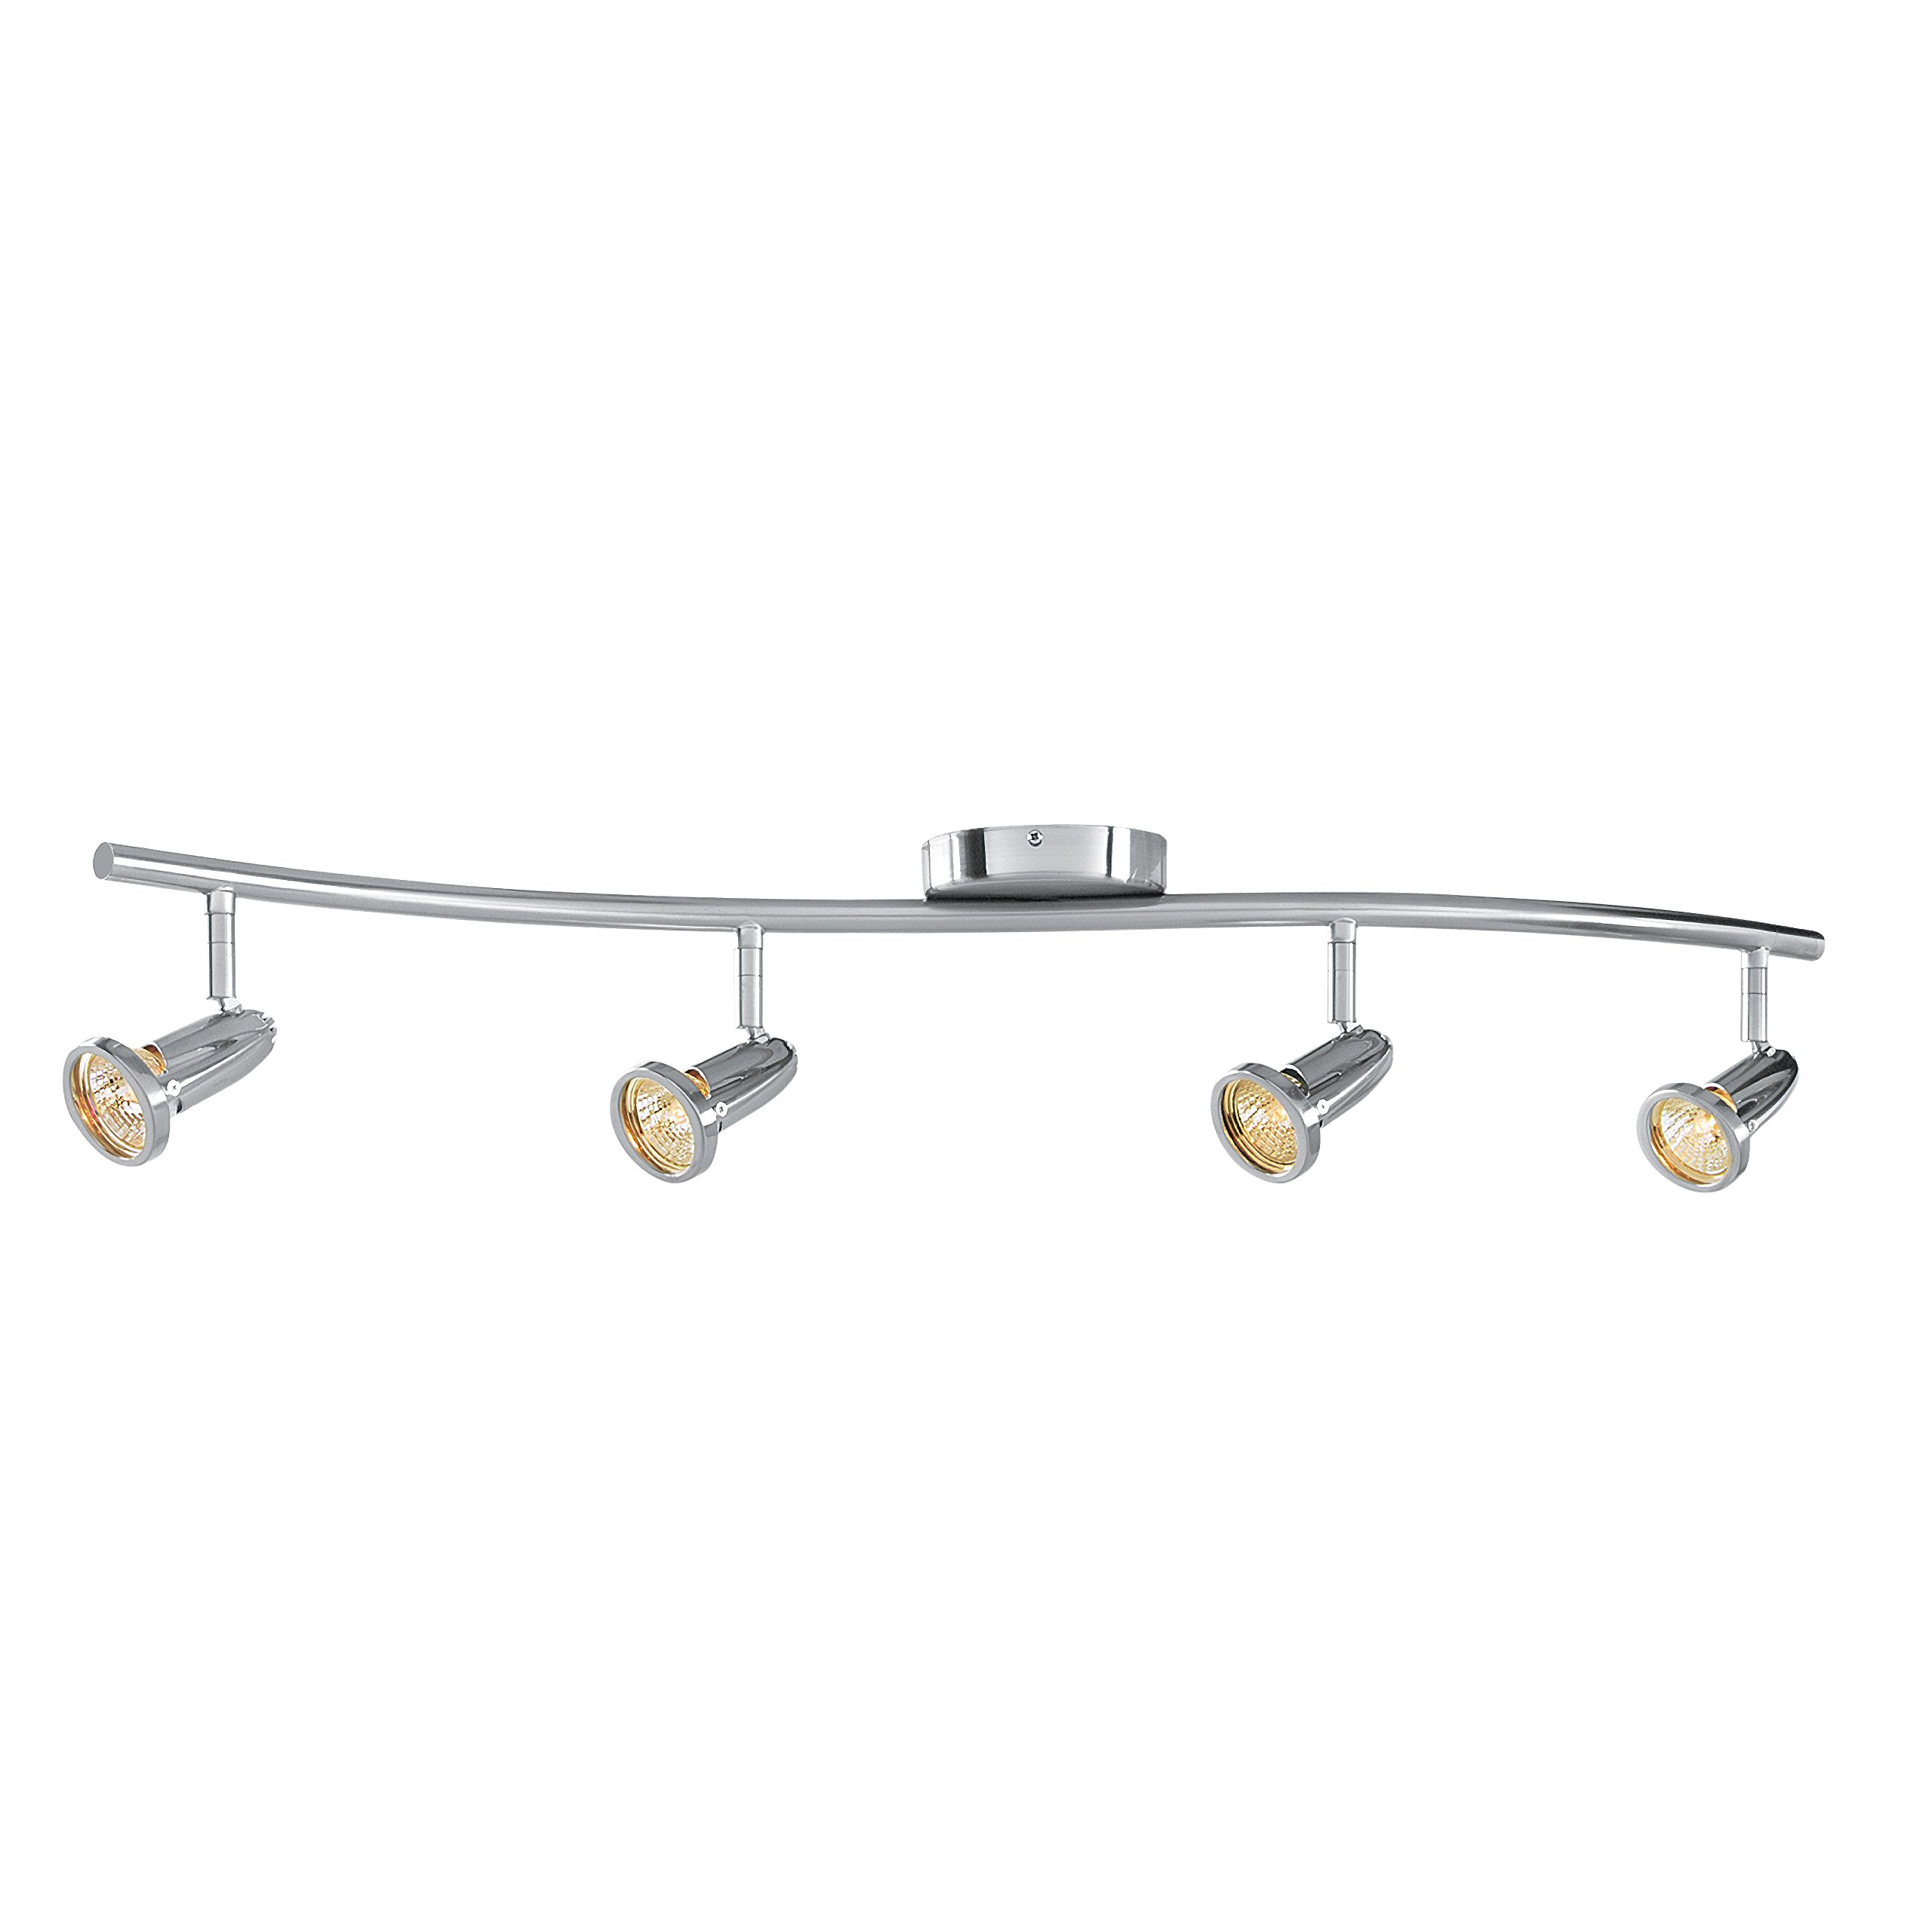 Cobra - LED Wall/Ceiling Semi-Flush Spotlight Bar - 4-Light - Brushed Steel Finish